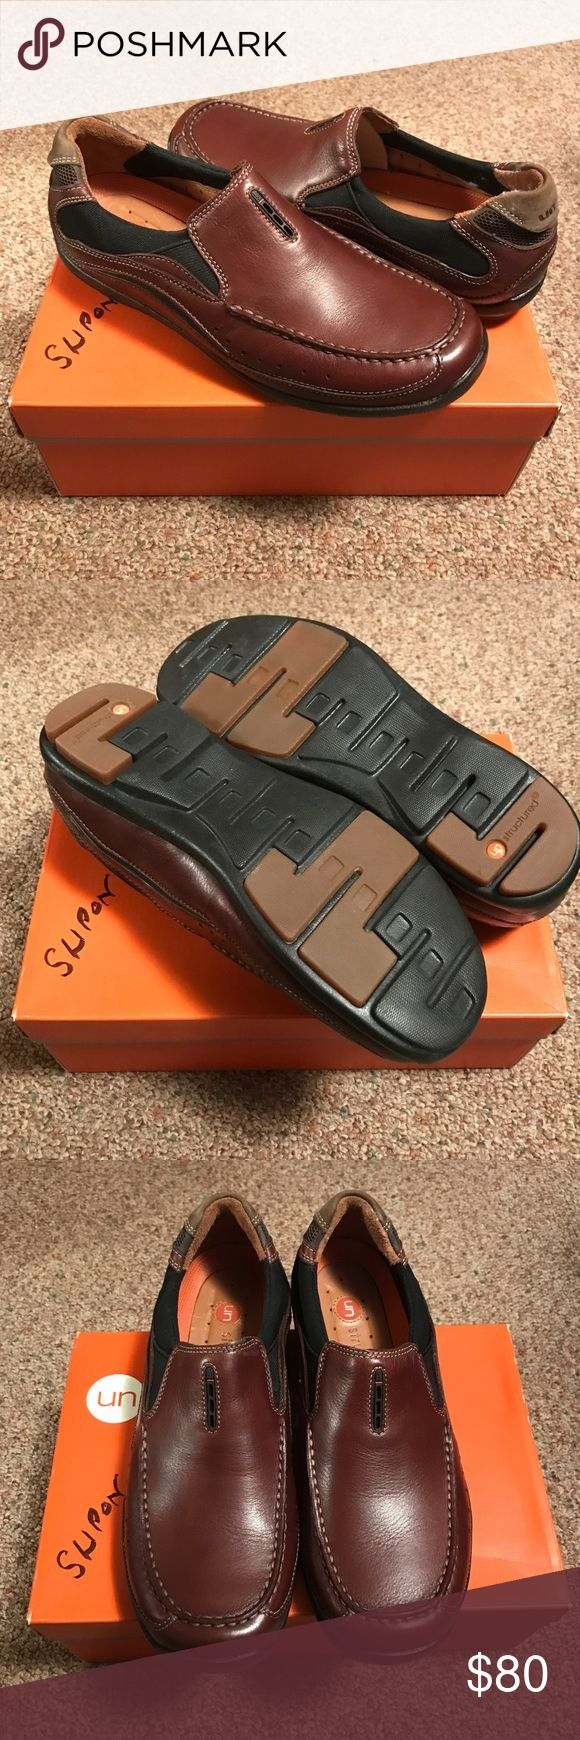 CLARKS MENS UNSTRUCTURED BROWN LEATHER SLIP ON NEW Selling these men's slip on shoes by Clarks. These are the unstructured line. Brown leather. Size 8. New with box-never worn. Clarks Shoes Loafers & Slip-Ons